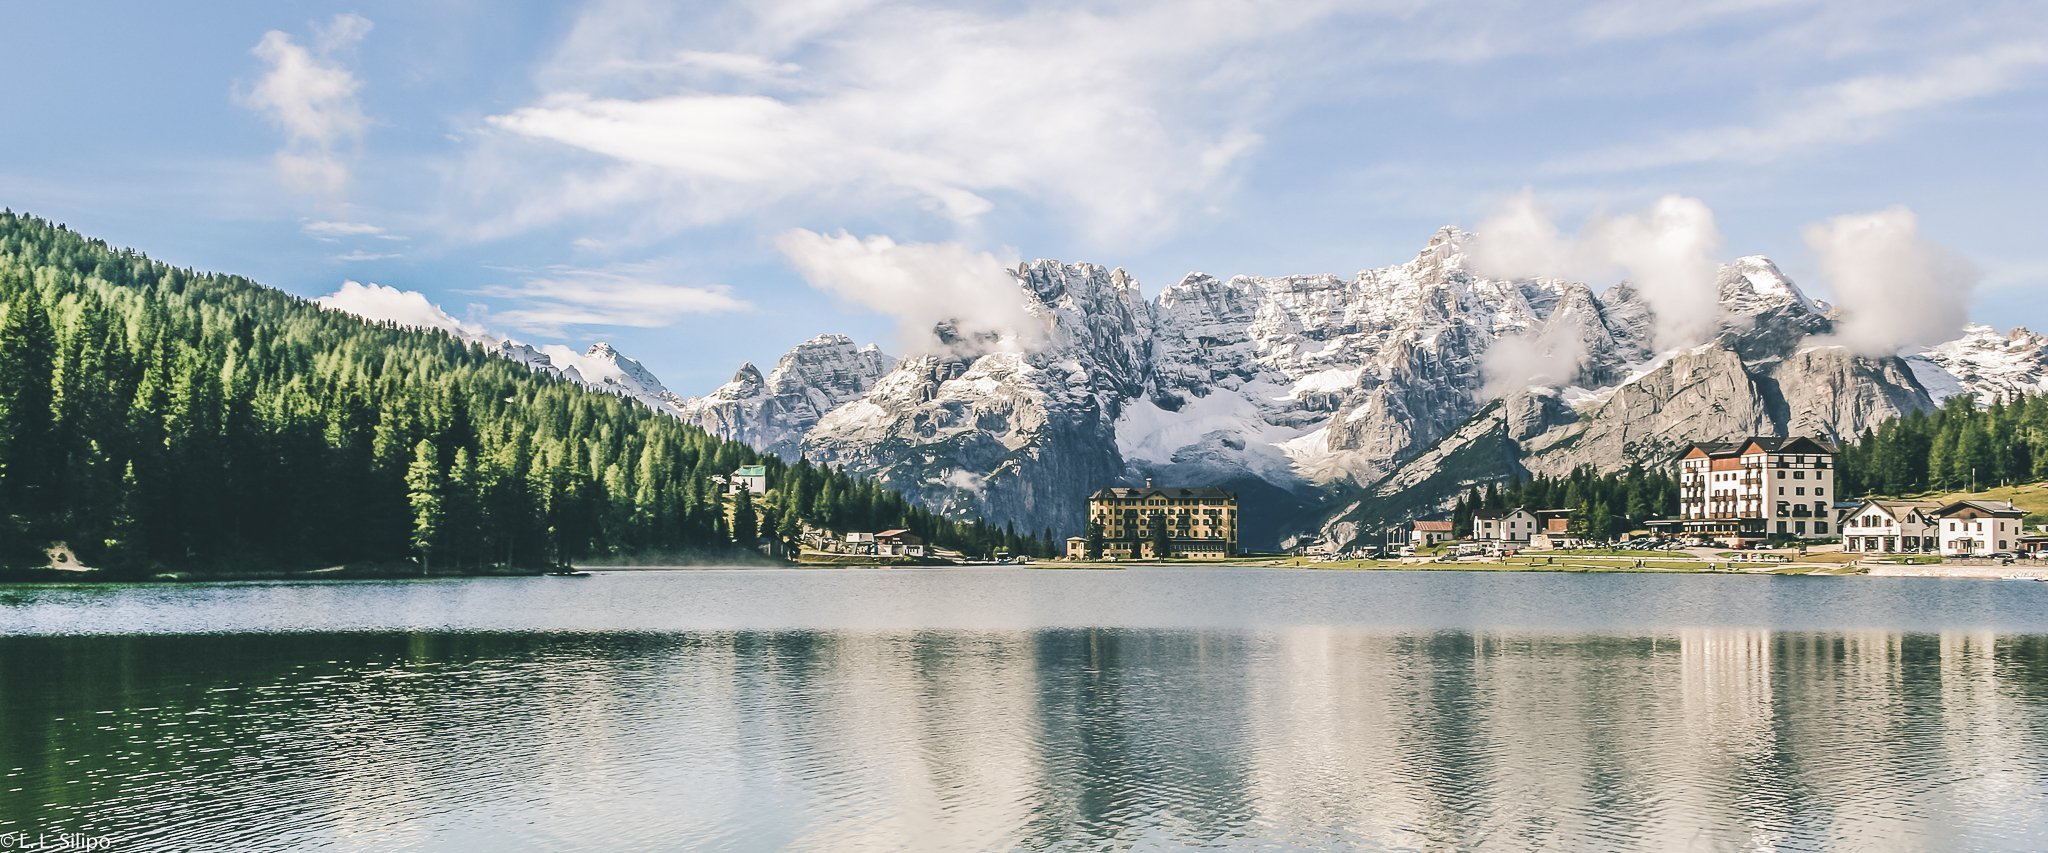 Dolomites, Misurina, adventure, alpine, alps, background, beautiful, cloud, cortina, dolomite, dolomiti, europe, house, italia, italian, italy, lake, landmark, landscape, misurina lake, mountain, mountains, nature, no person, outdoor, outdoors, panorama, panoramic, peak, reflection, scenery, scenic, sky, snow, summer, tourism, travel, tree, vacation, view, water, wood